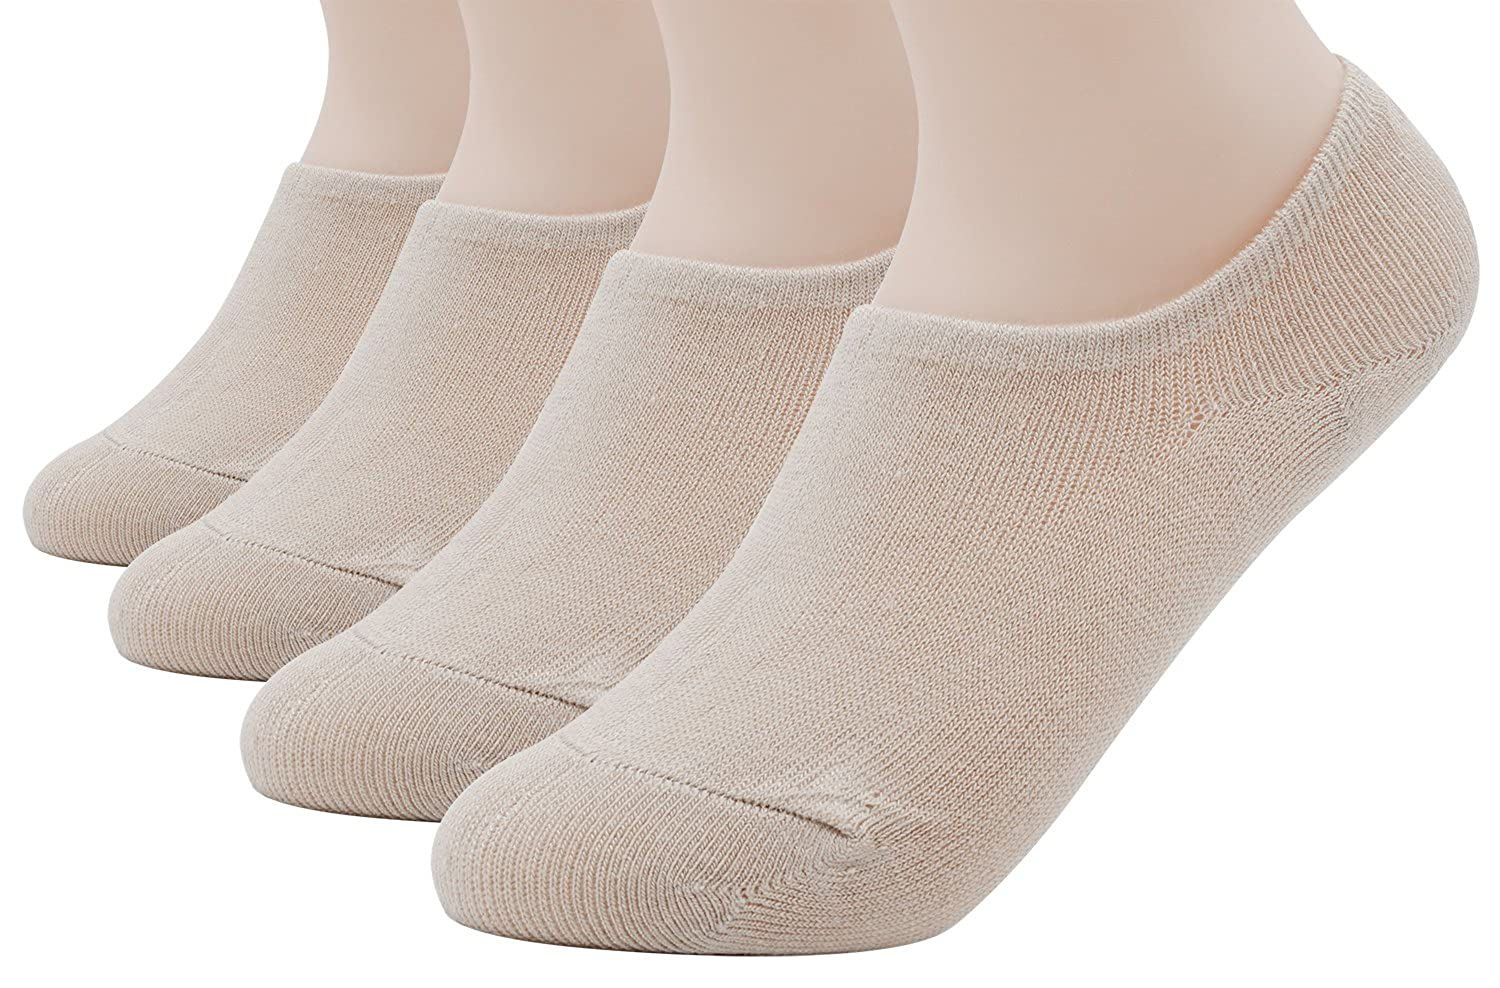 4 Pairs Womens Casual No Show Socks Low Cut Non Slip Flat Boat Line